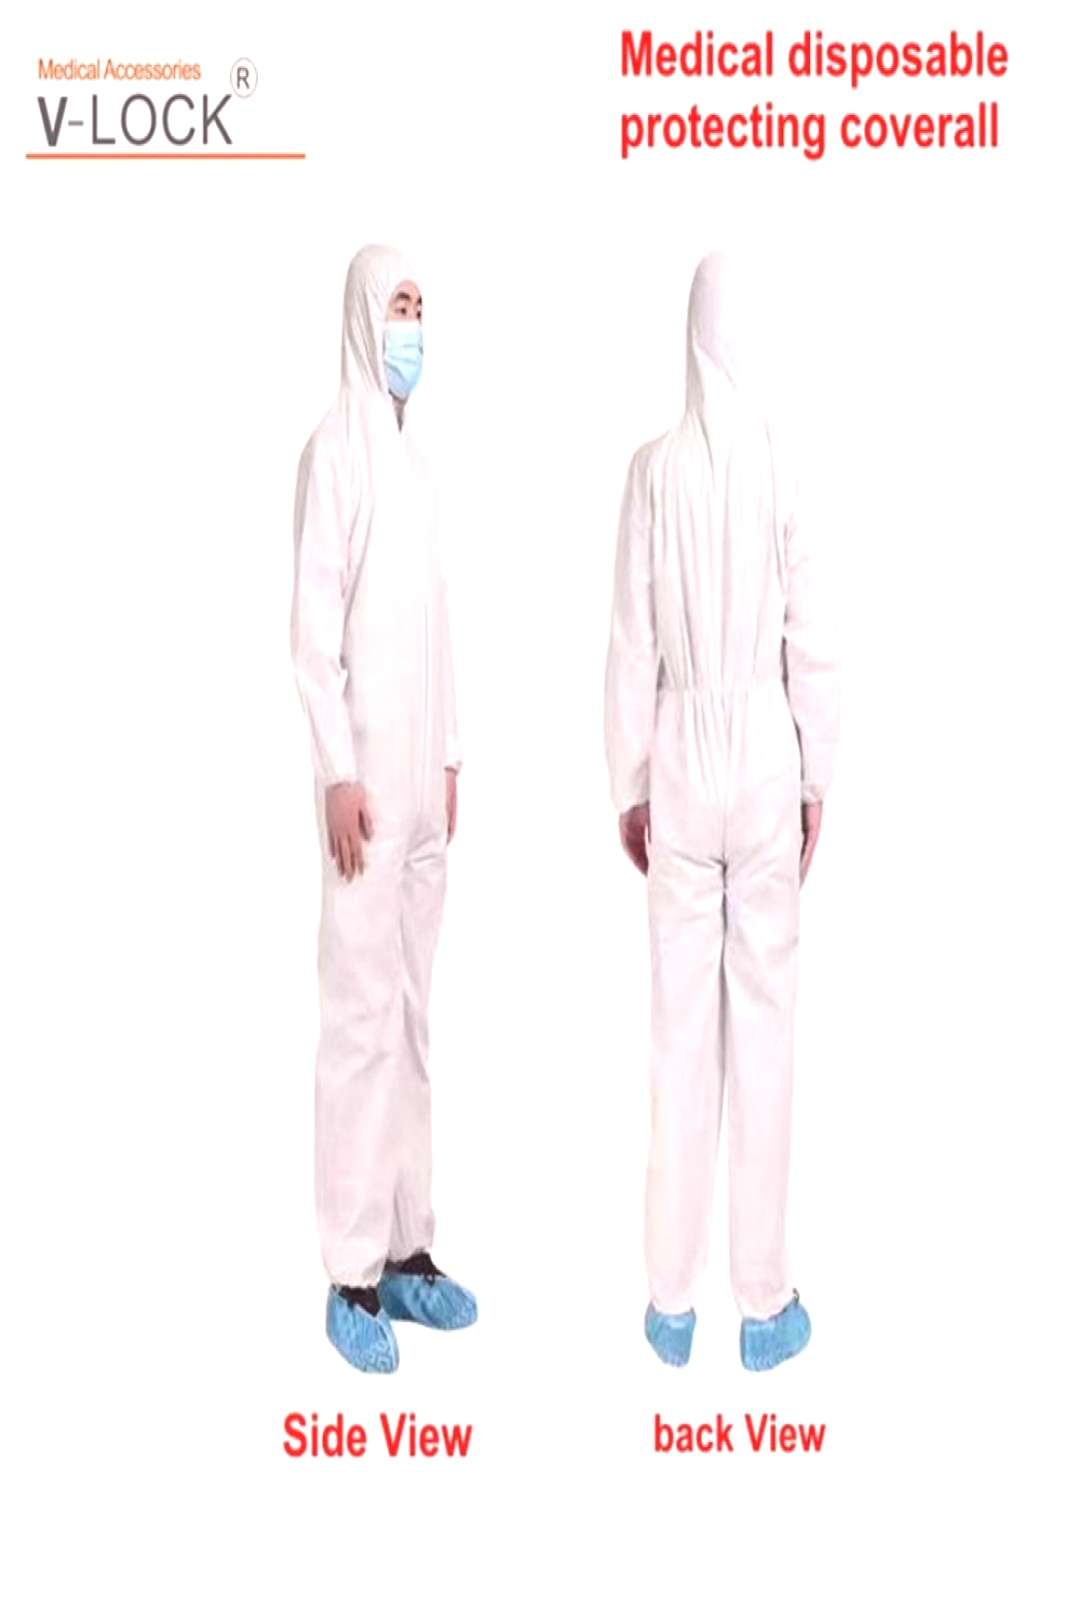 disposable medical protecting coverall islation cover 5PCS packing Price $87.75  #belugabazaar